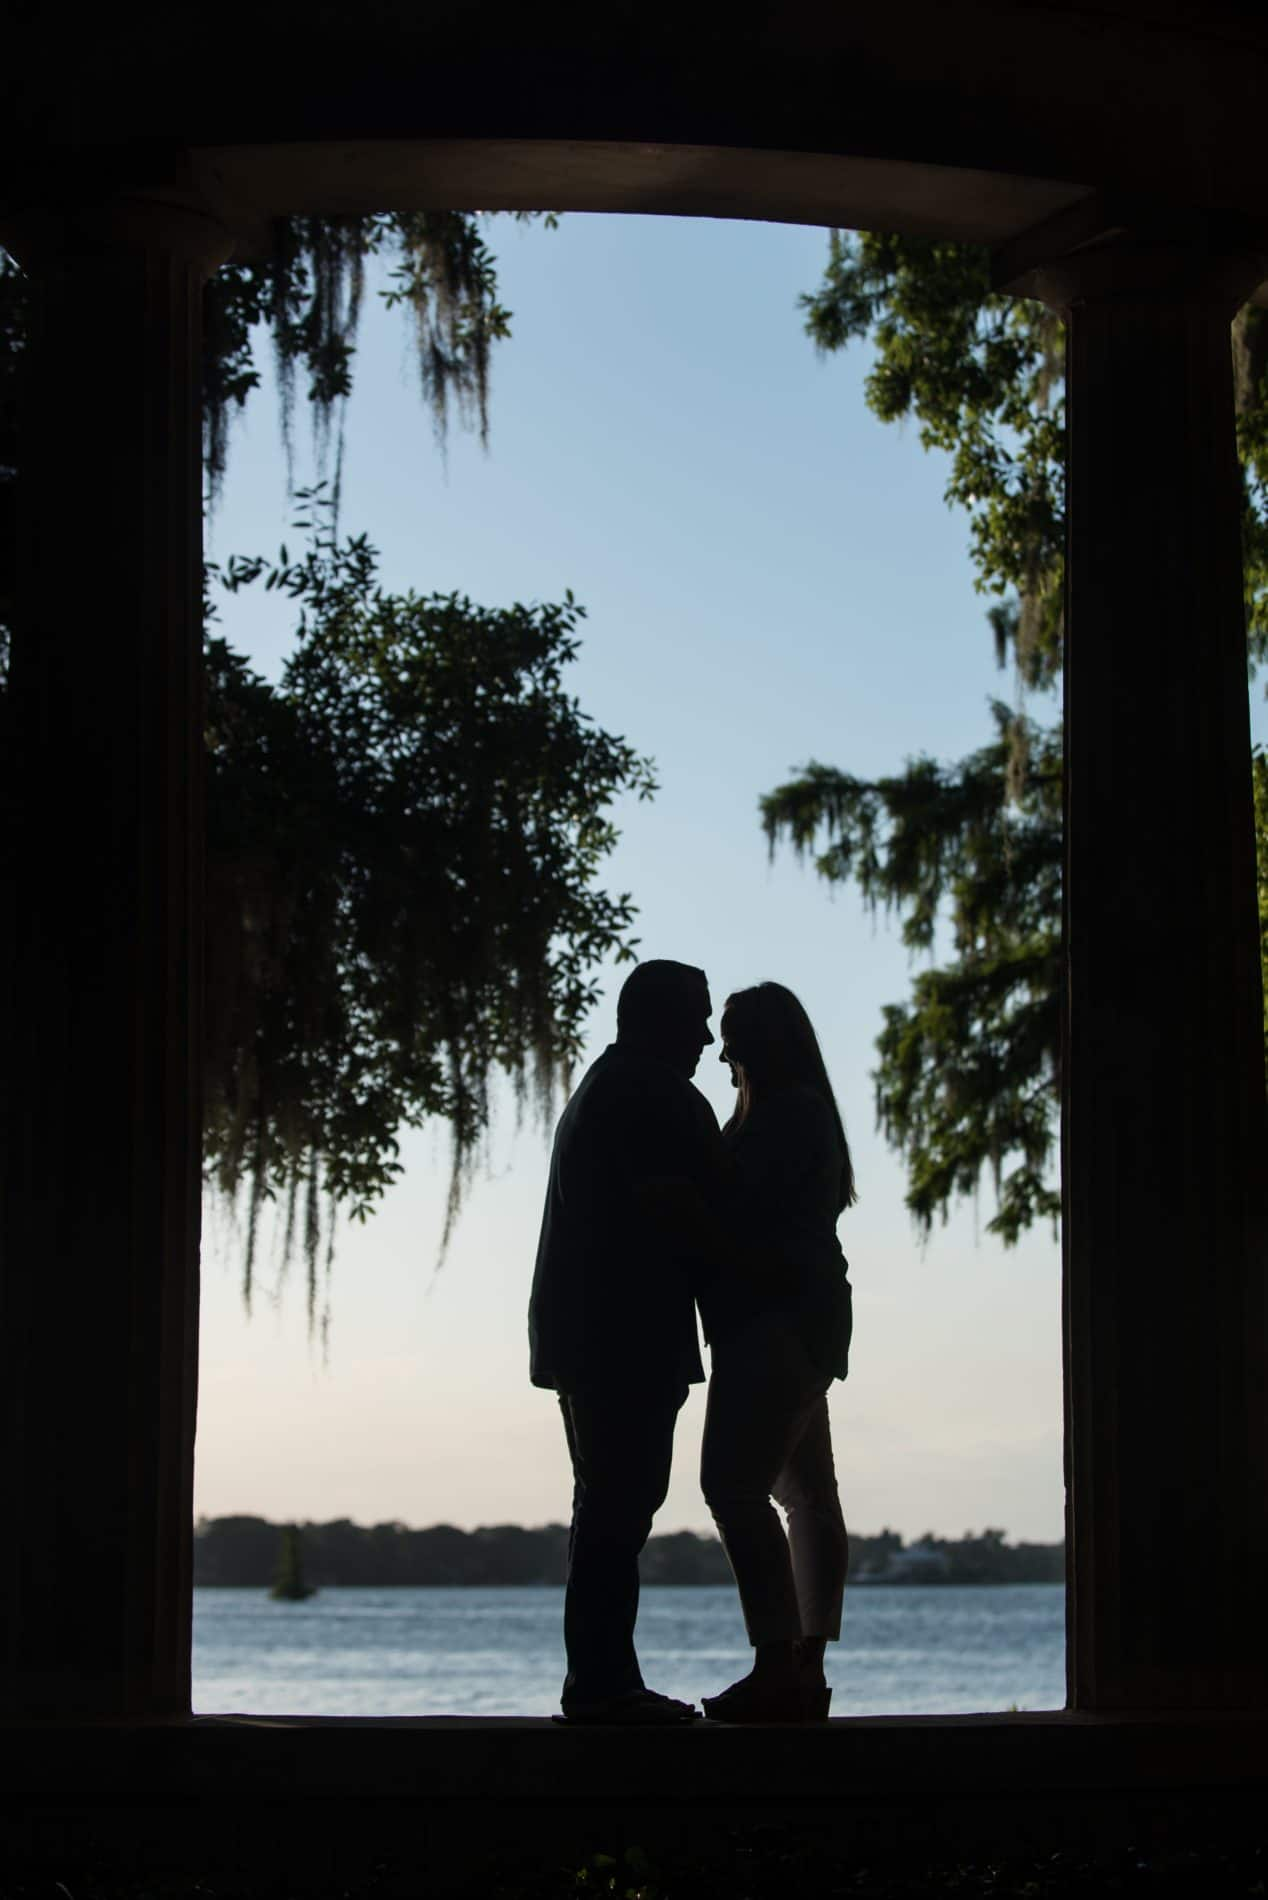 Gothic archway frame a photo of an engaged couple